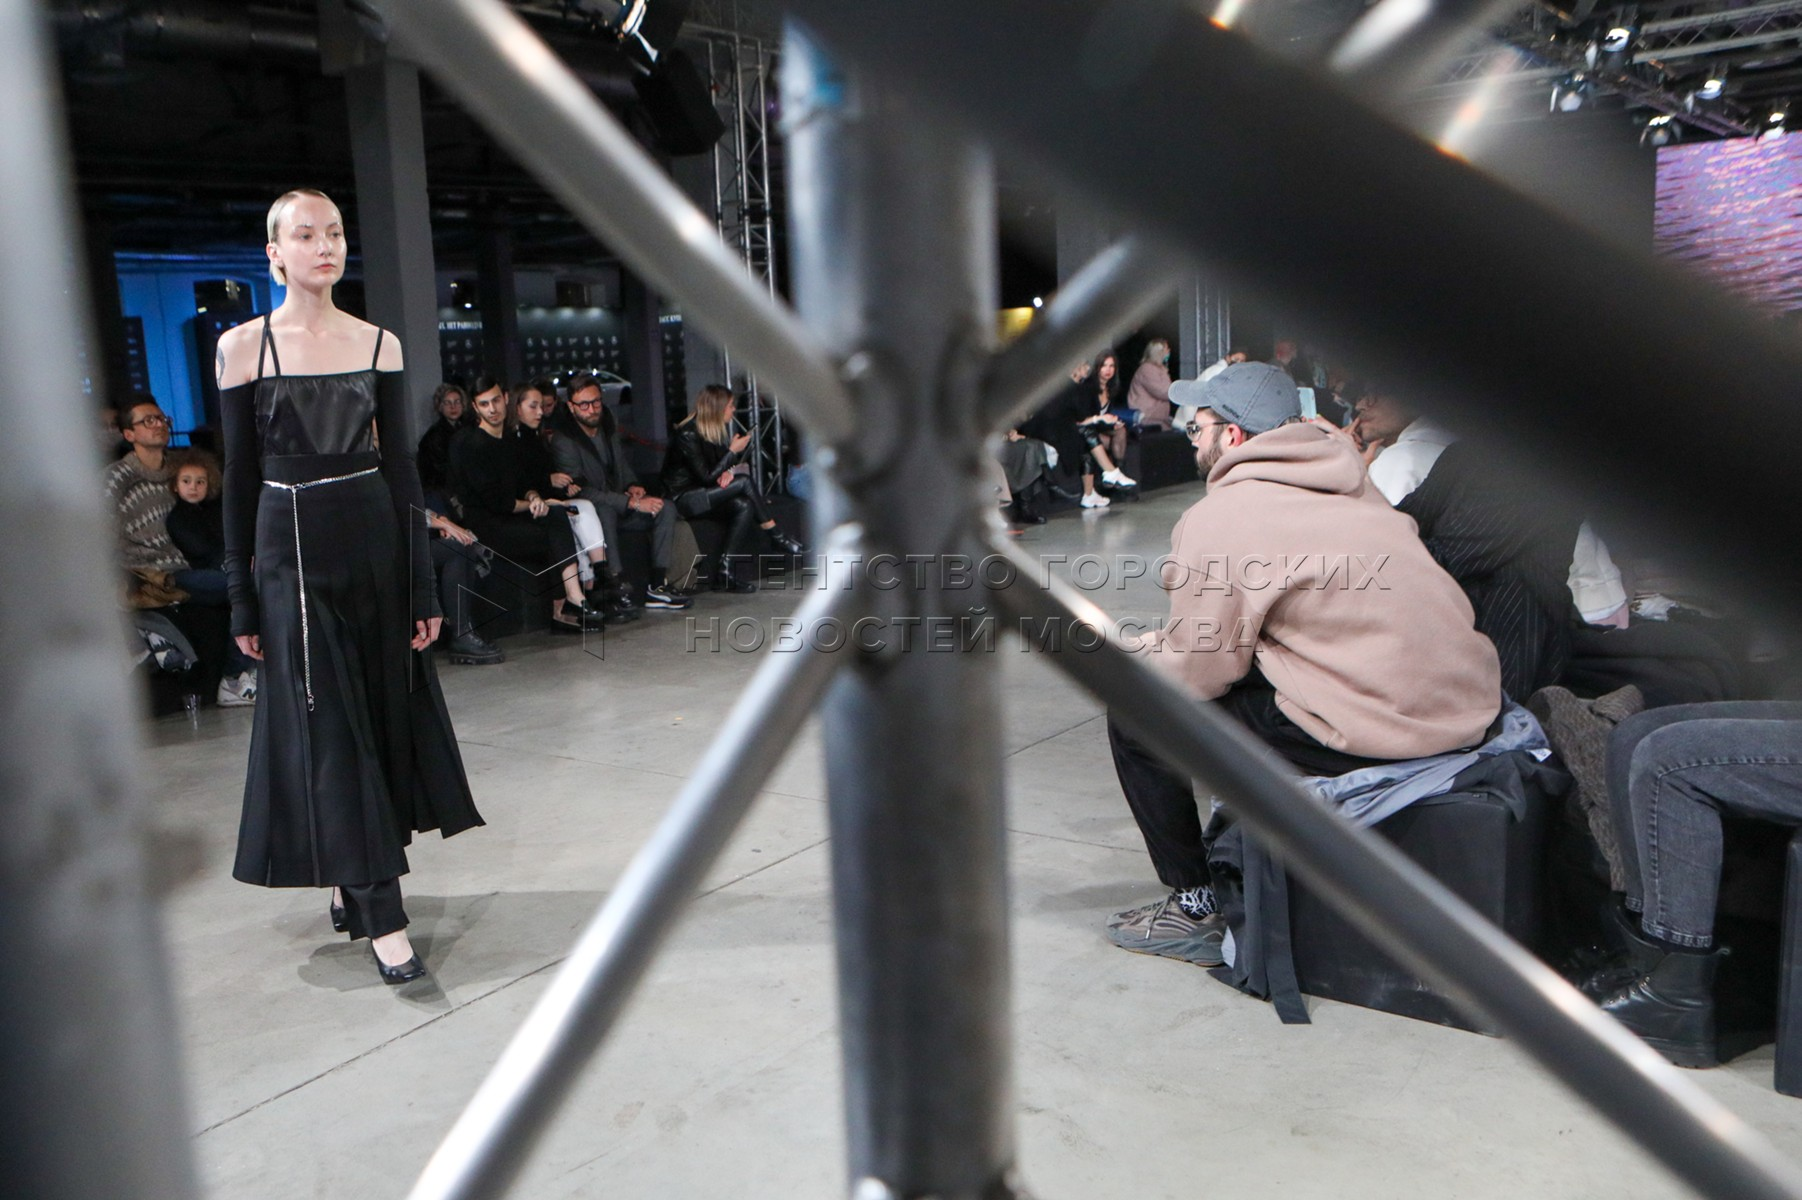 Показ дизайнера Otocyon на неделе моды Mercedes-Benz Fashion Week Russia 2020.